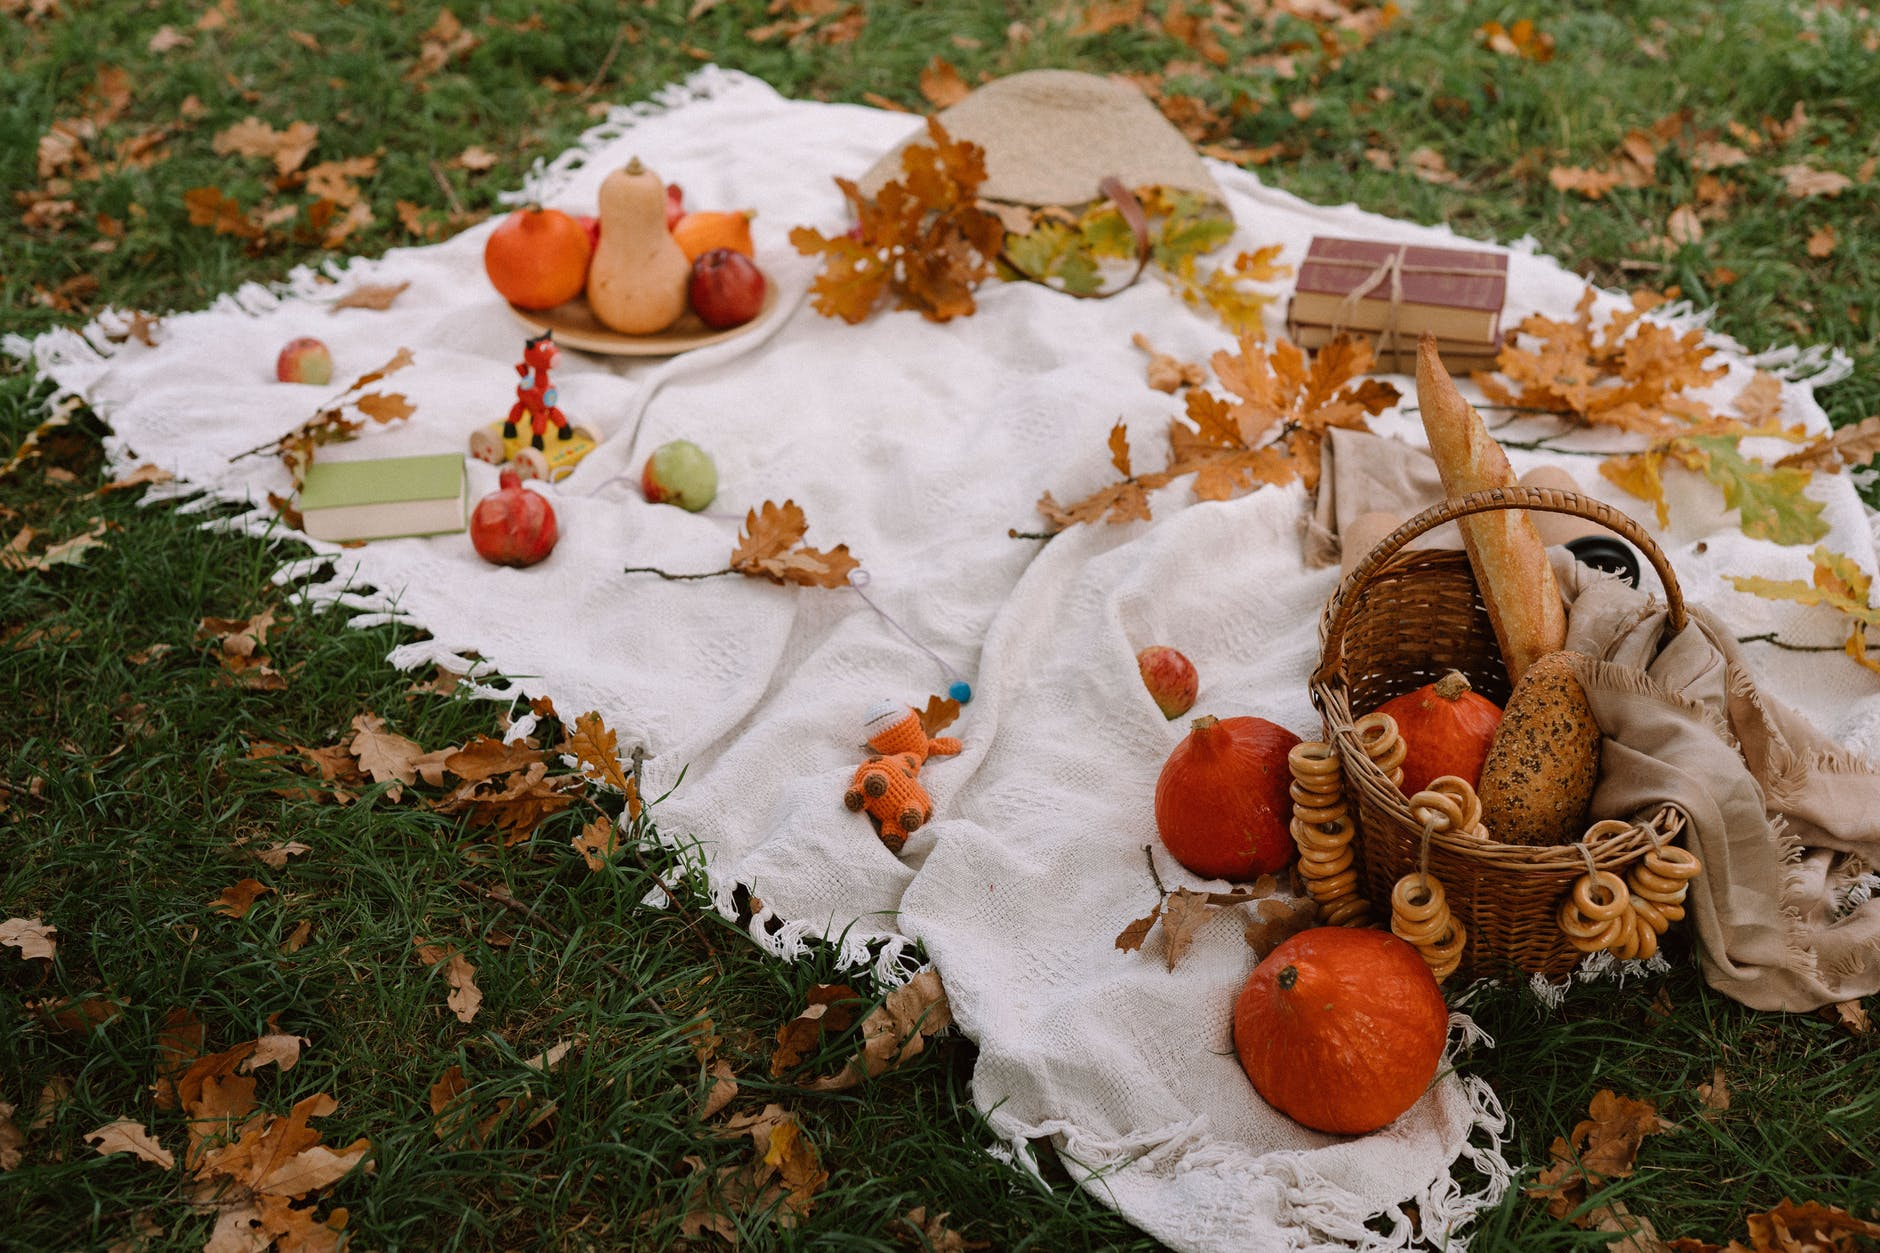 autumn composition with assorted pumpkins and bread in basket placed on plaid on grassy lawn